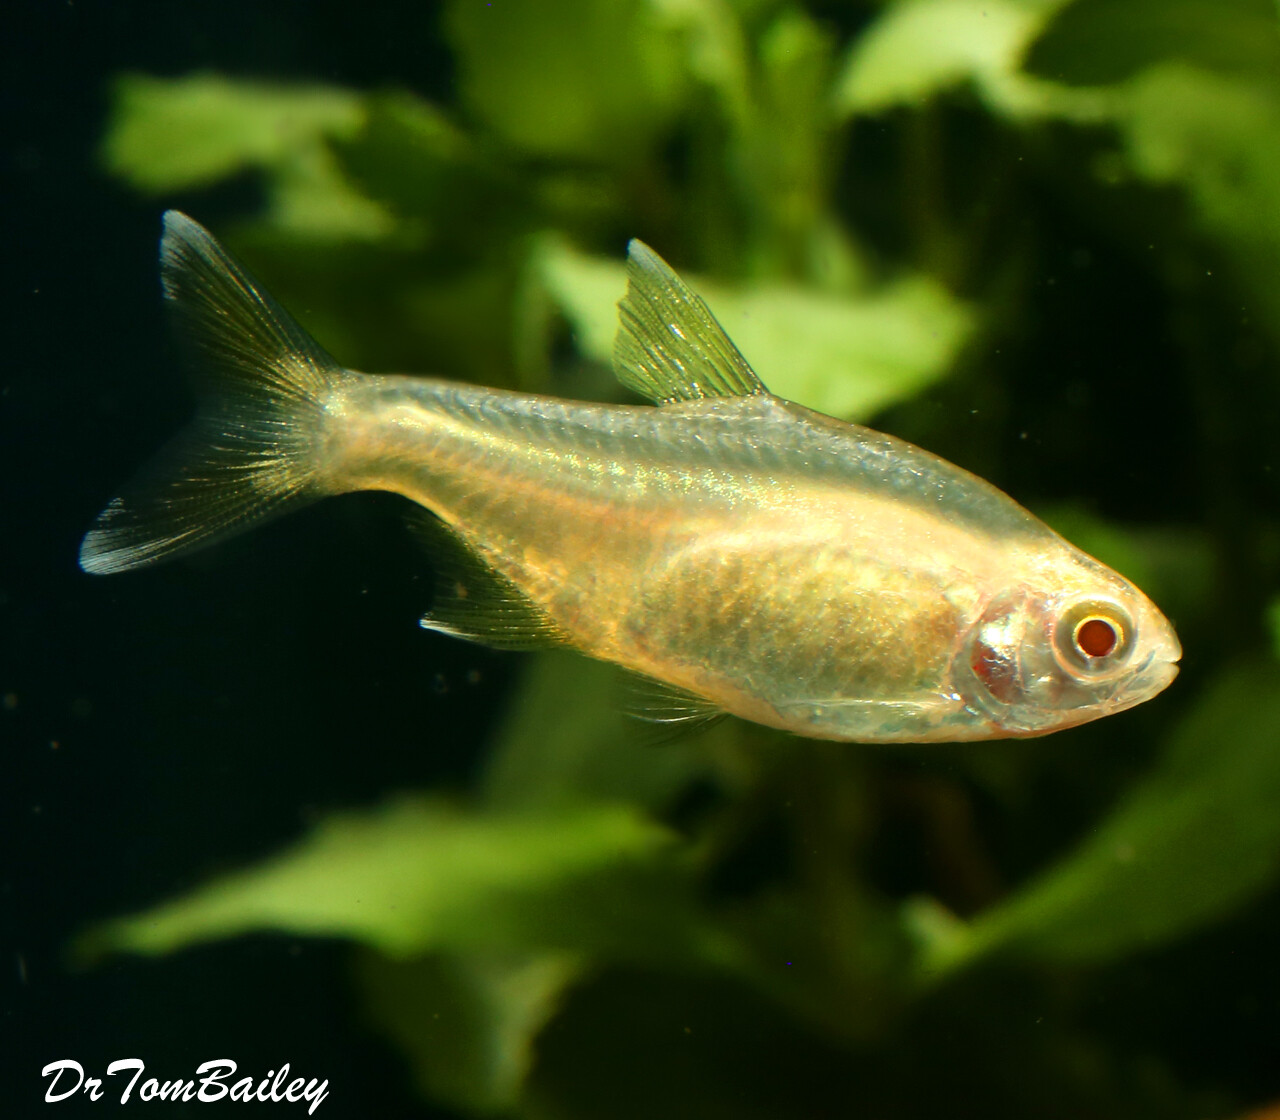 Premium Albino Silver Tip Tetra with Red Eyes and Shiny Golden Body